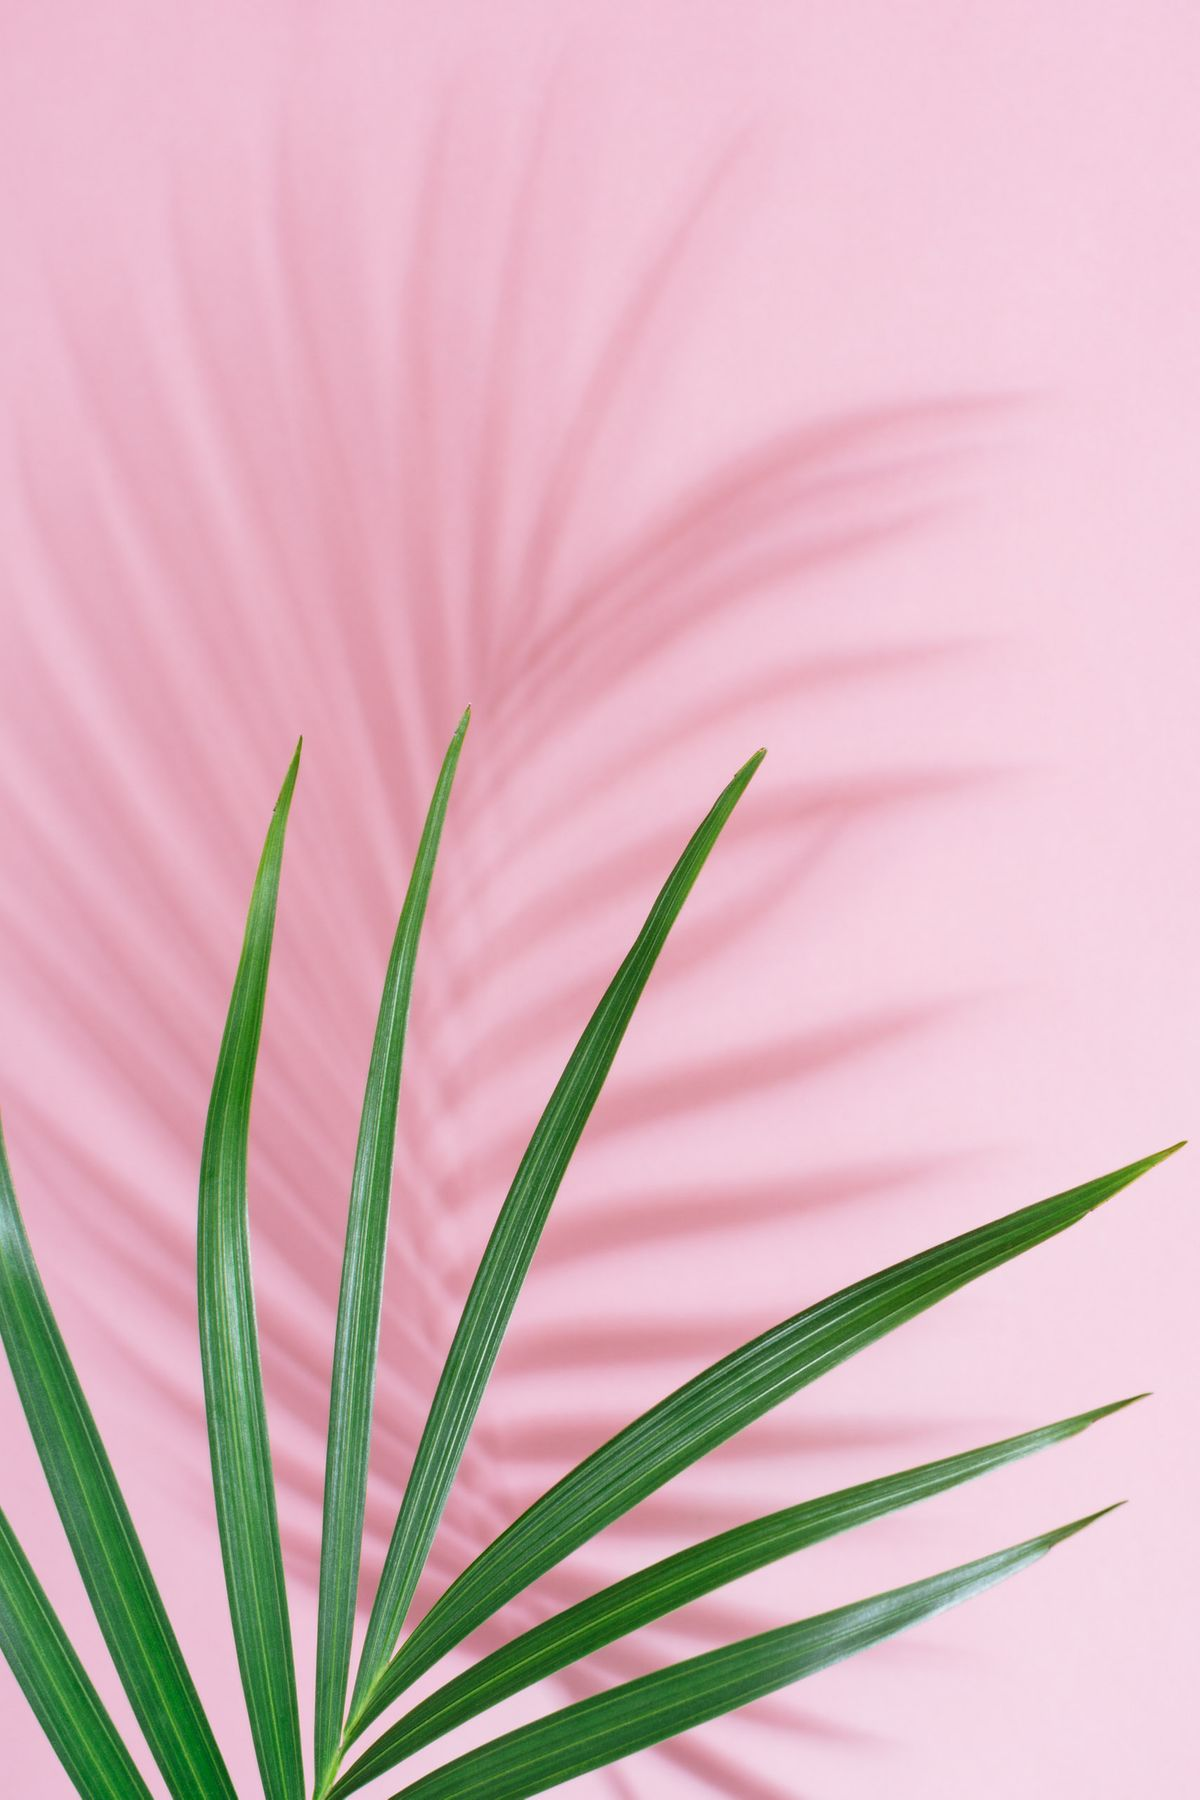 Palm frond  on pink background